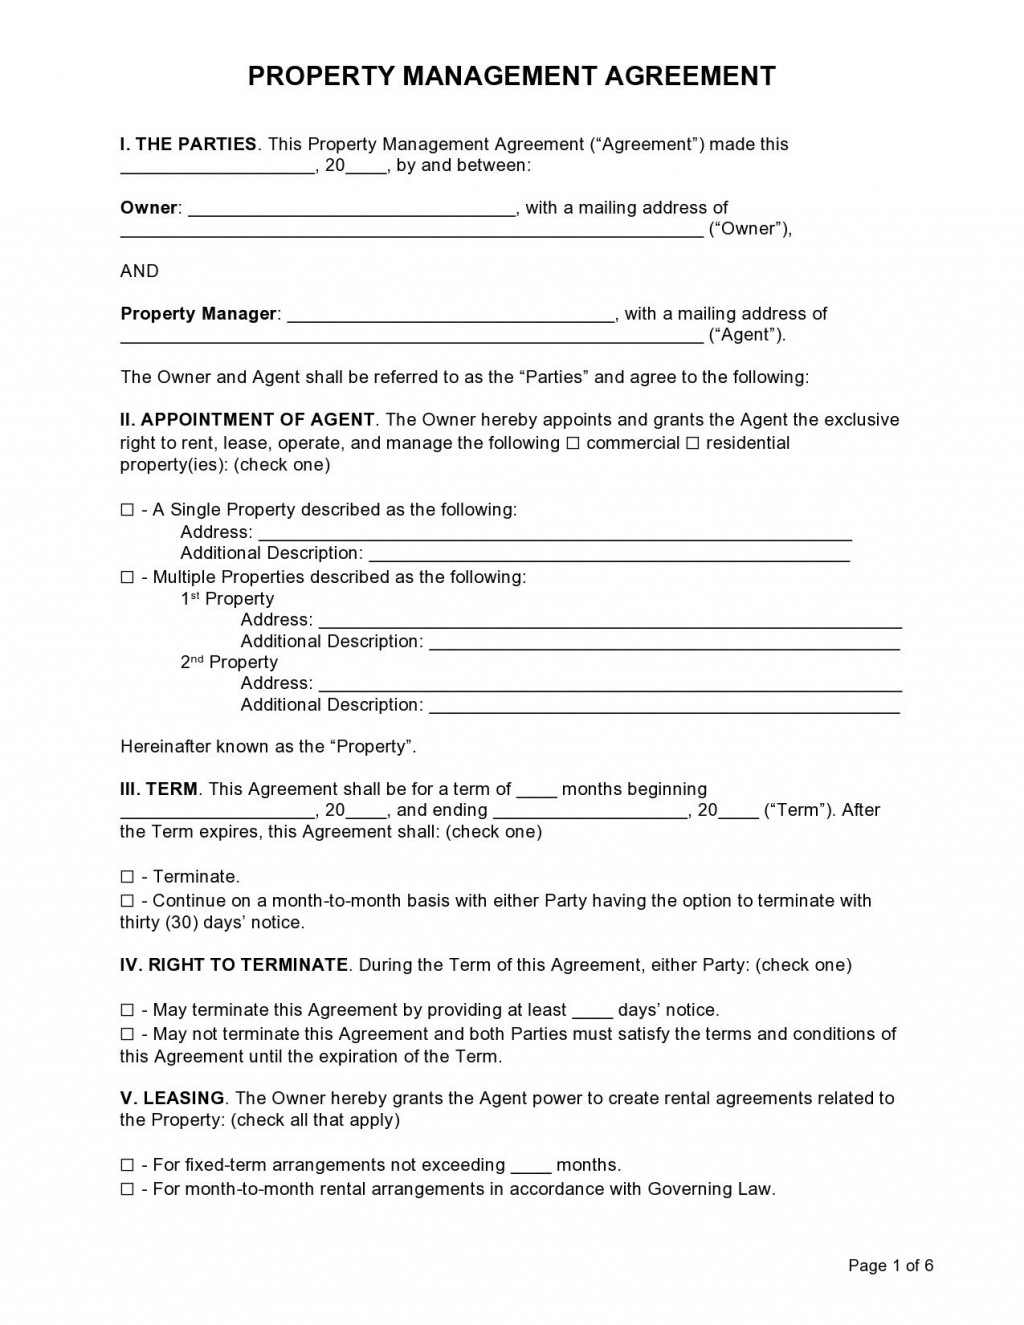 006 Impressive Commercial Property Management Agreement Template Uk Picture Large